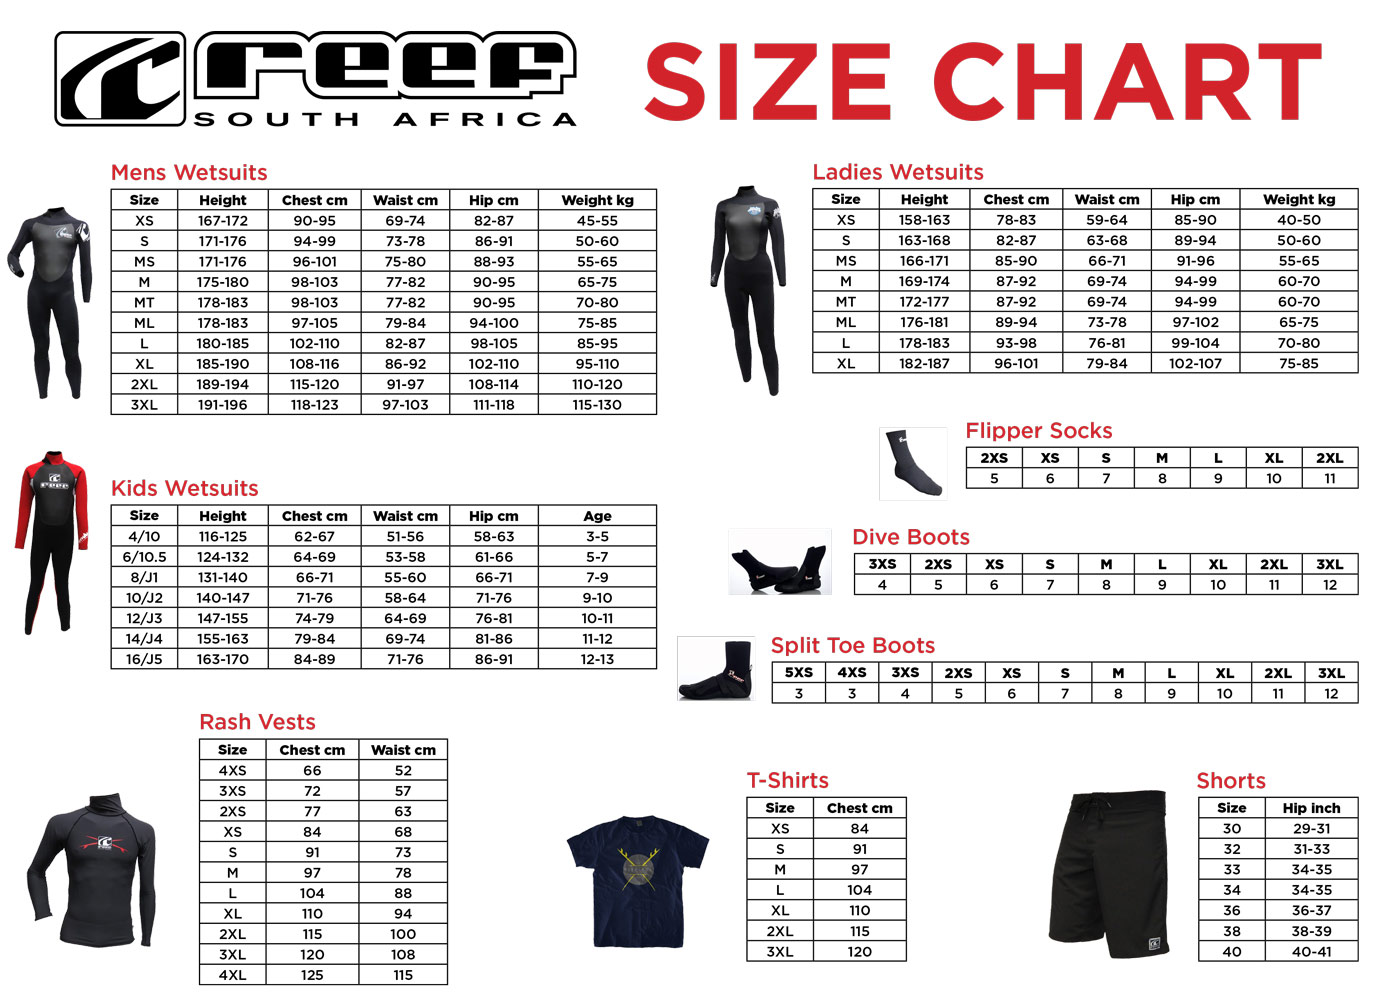 south african dress size chart: Reef wetsuits size chart jpg